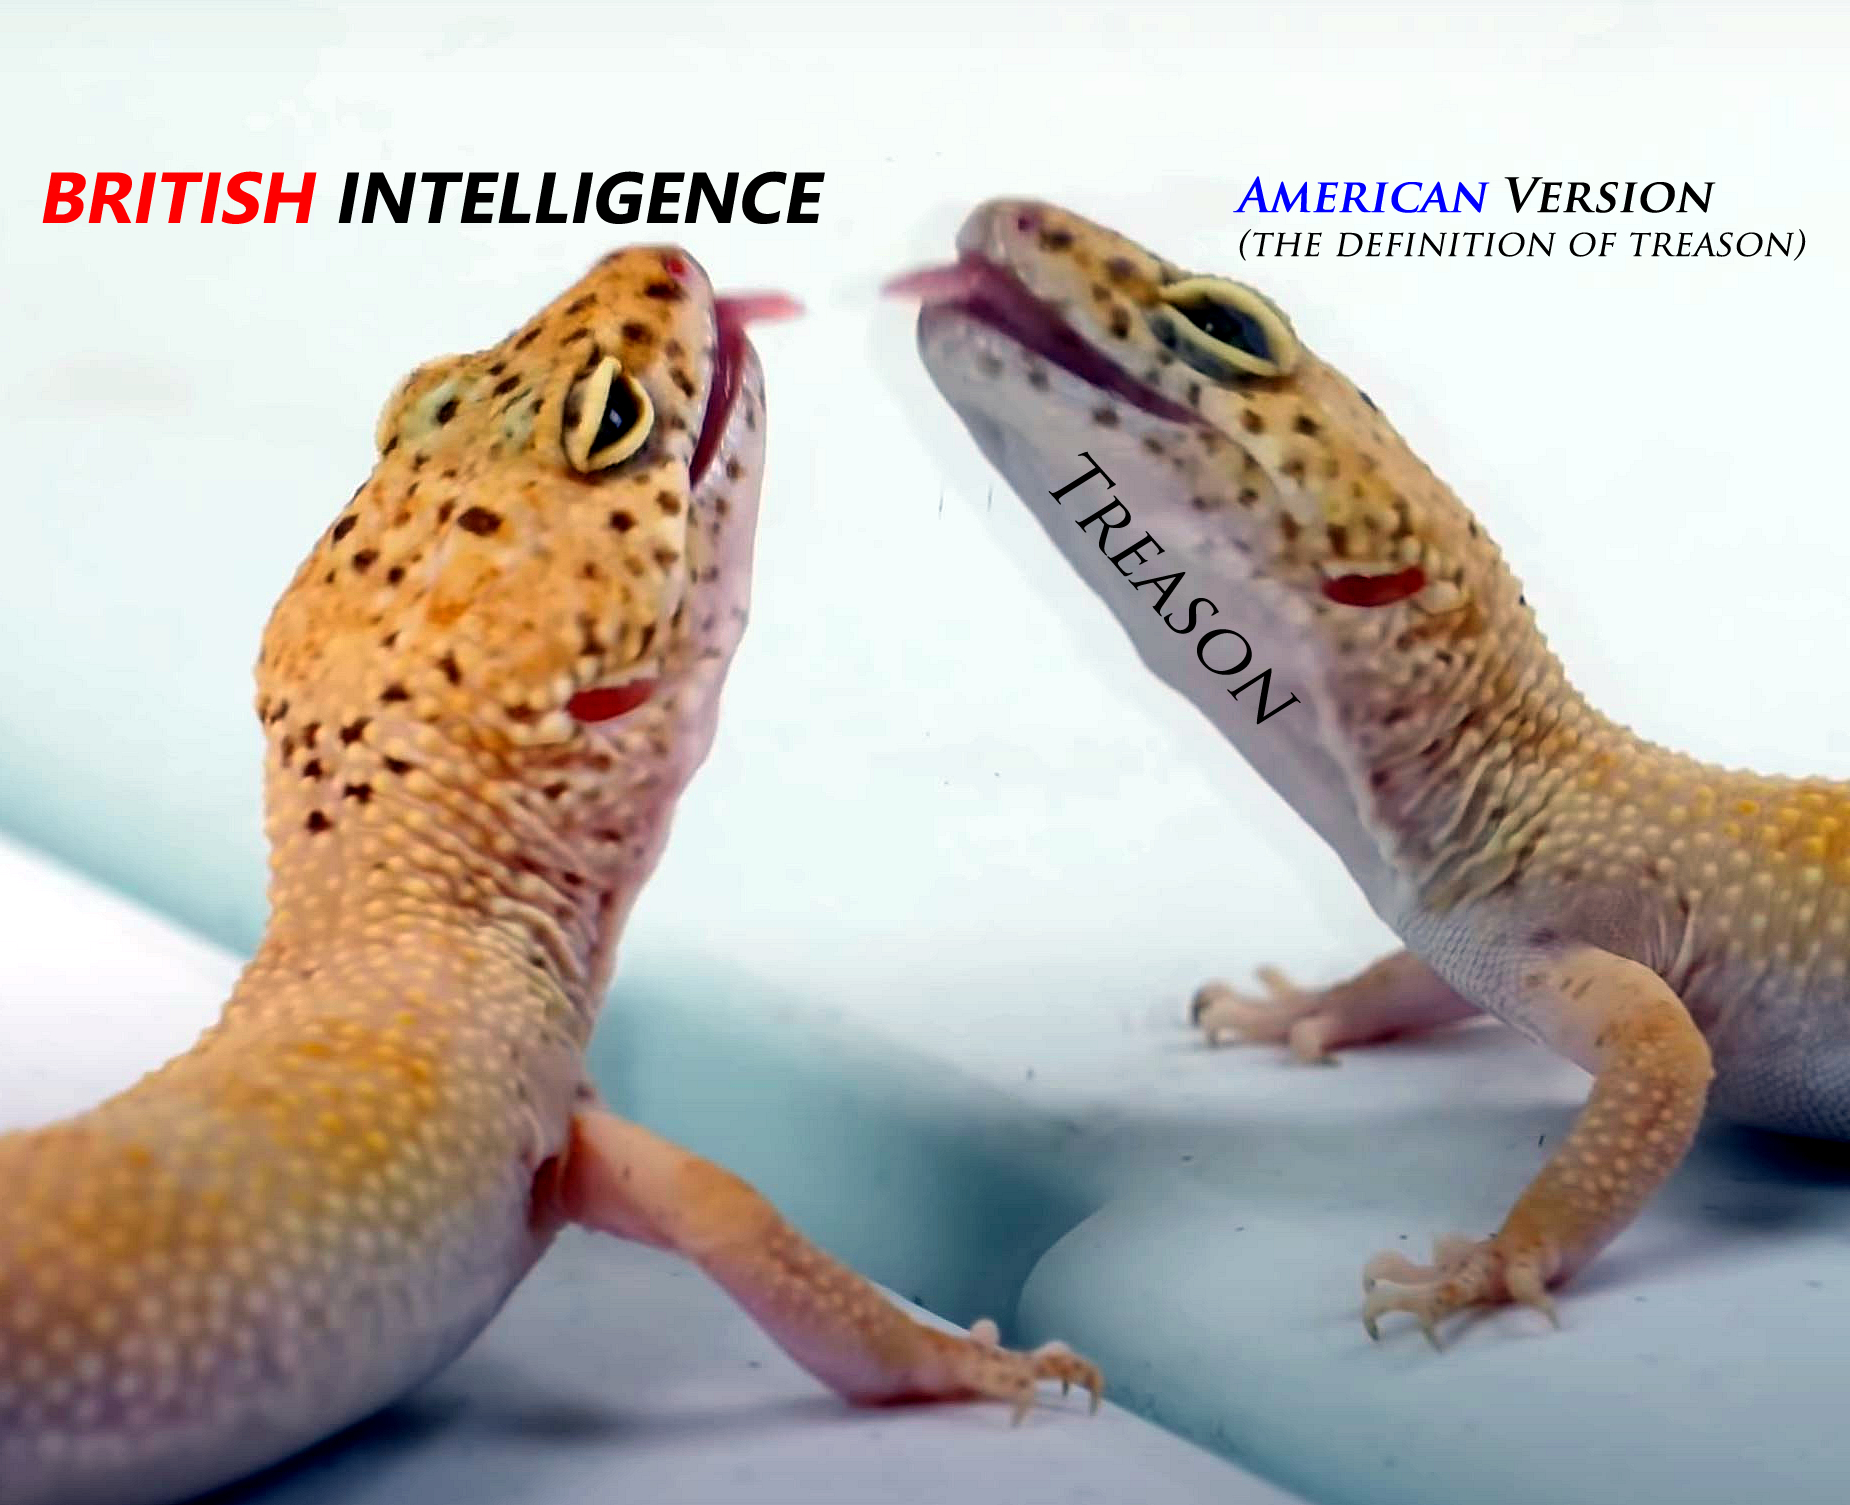 American intelligence is merely a clone of British intelligence